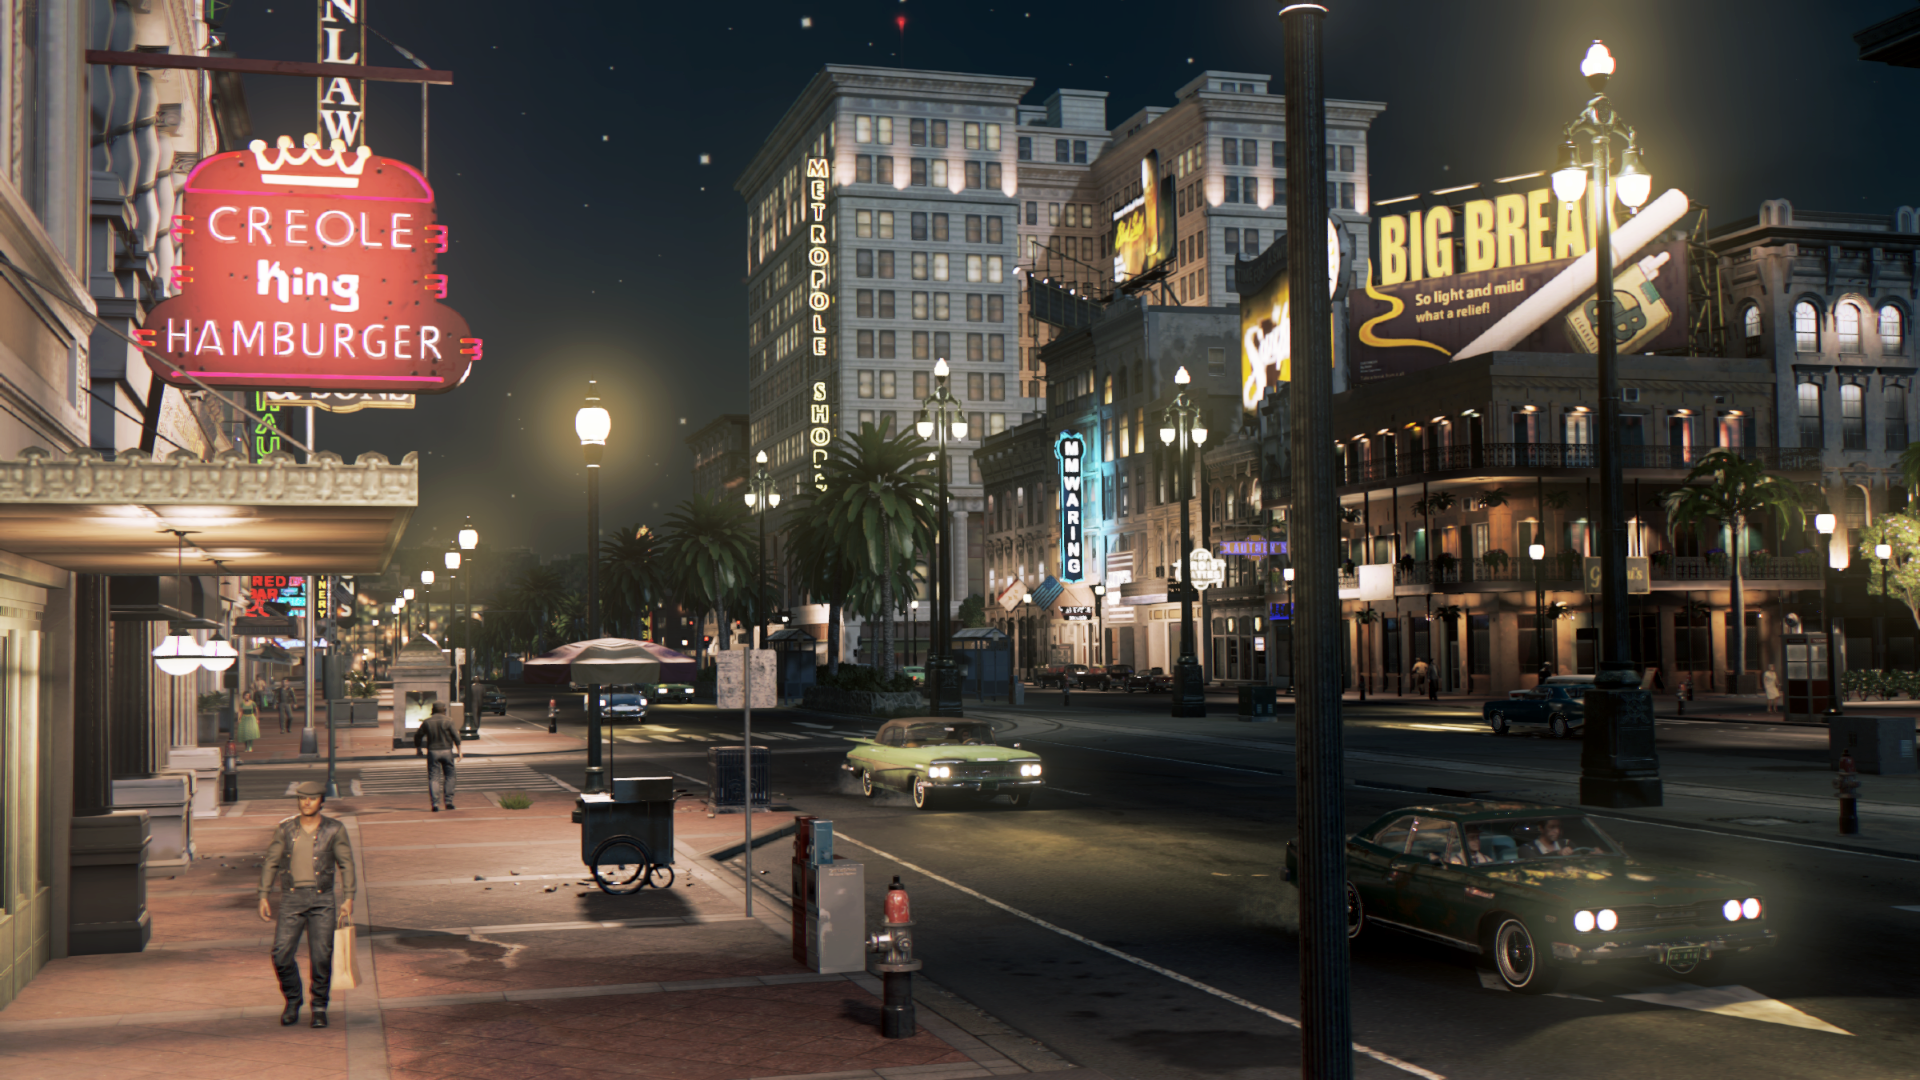 2K_MAFIAIII_GAMESCOM_SCREENSHOTS_DOWNTOWN01